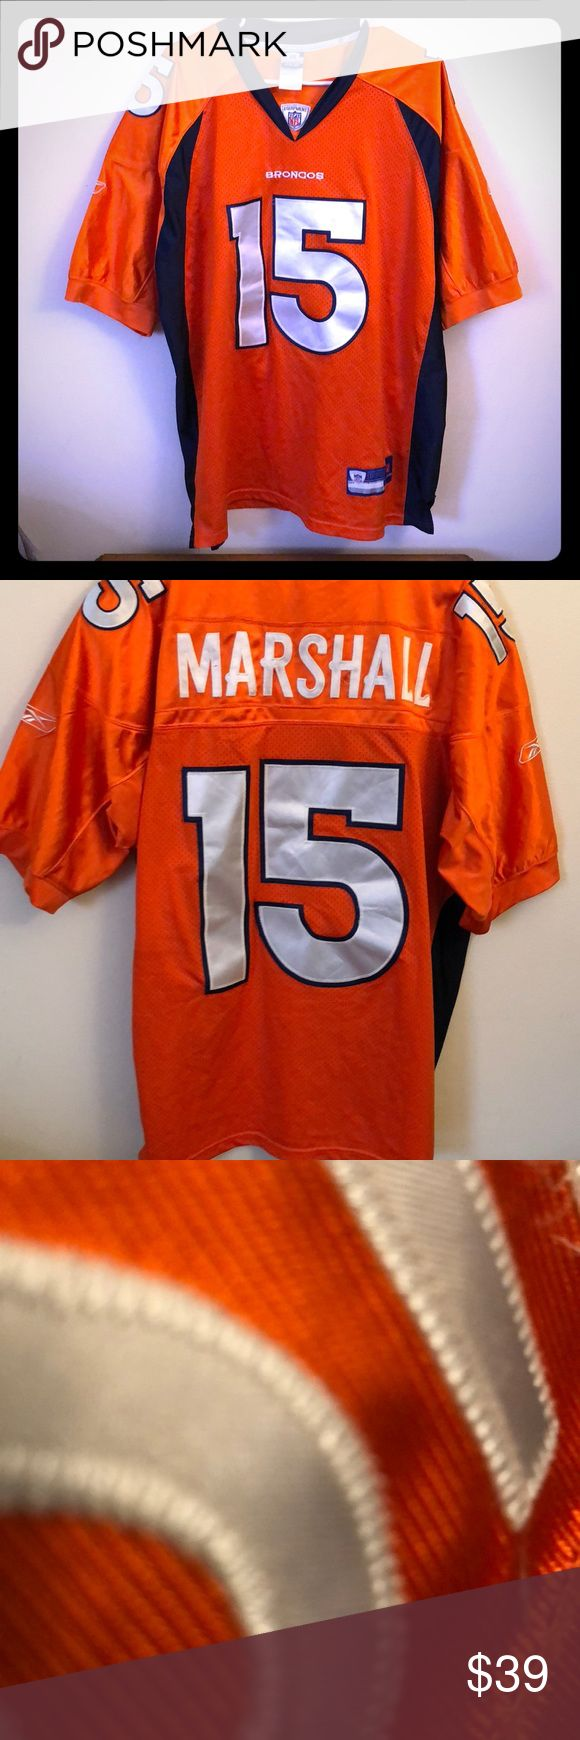 Denver broncos stitched jersey P for sale is an on field stitched brandon Marshall Denver broncos size xl(52). Support the broncos The team who originally drafted Marshall at a great price. Jersey has been worn 5 times and is in great condition. Other